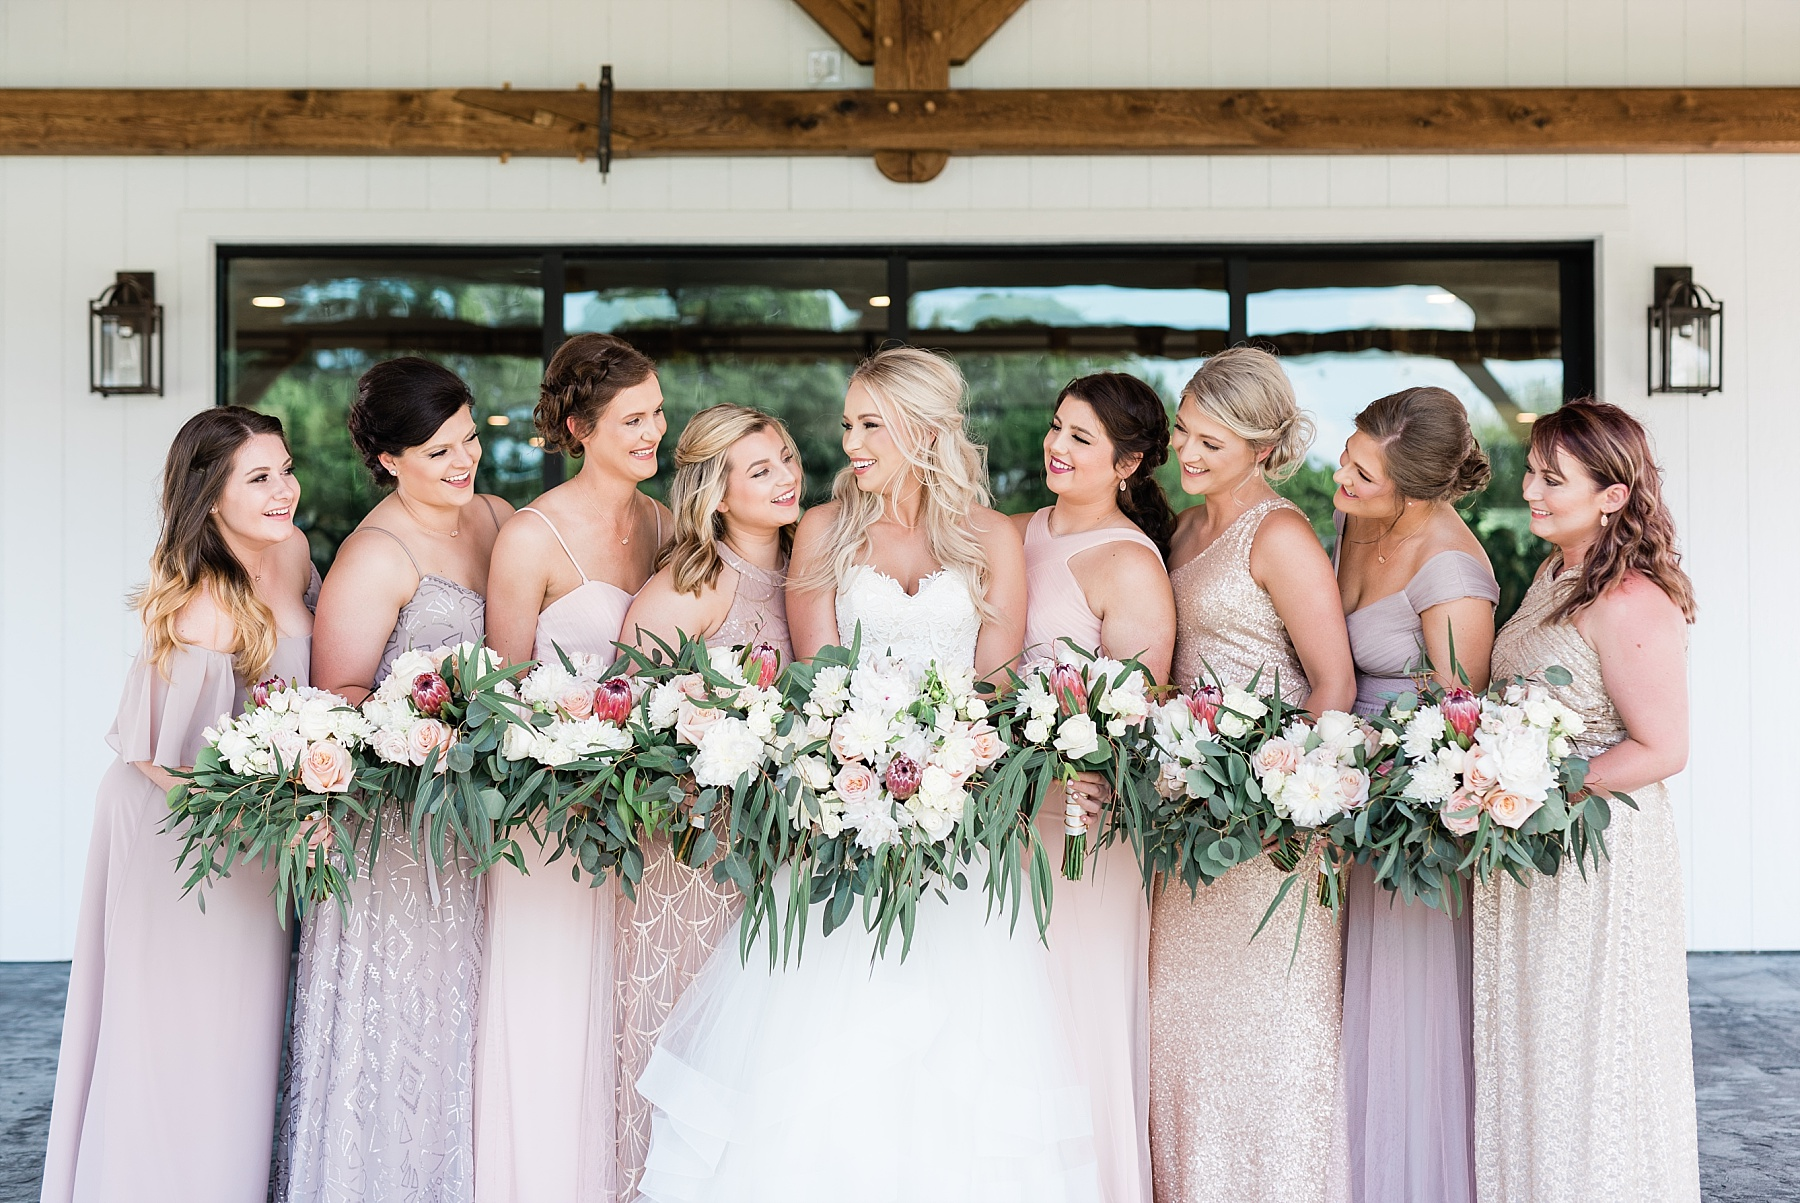 Stunning Heartfelt, Elegant, Fine Art, Chic, Outdoor Spring Wedding with Blush, Cream, Greenery, Rose Gold, and Sequins at Emerson Fields Venue by Kelsi Kliethermes Photography_0029.jpg